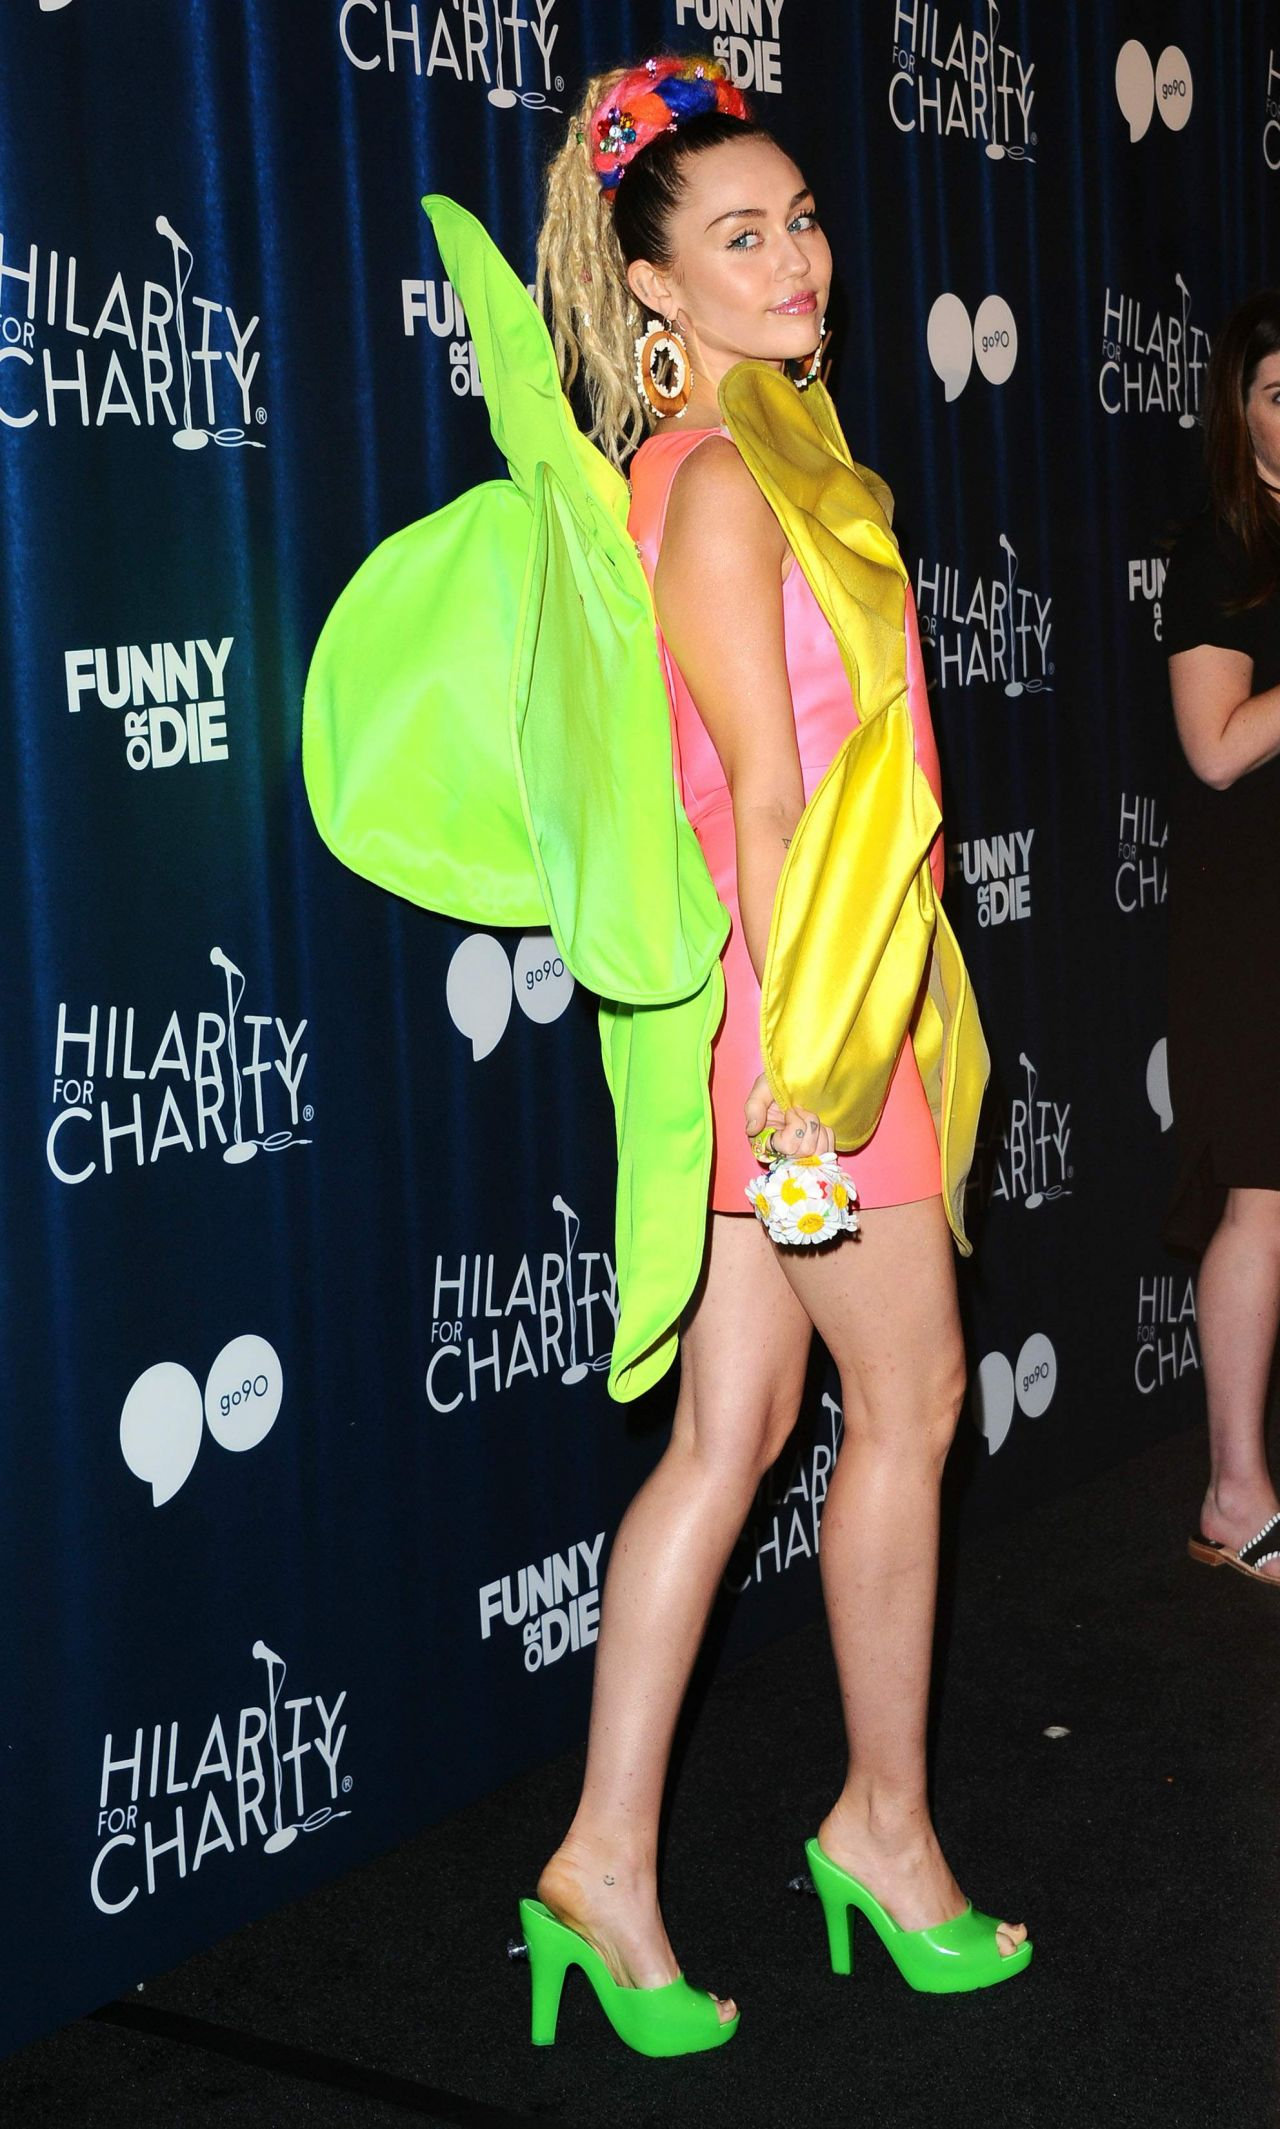 Miley Cyrus Hilarity For Charity S James Franco S Bar